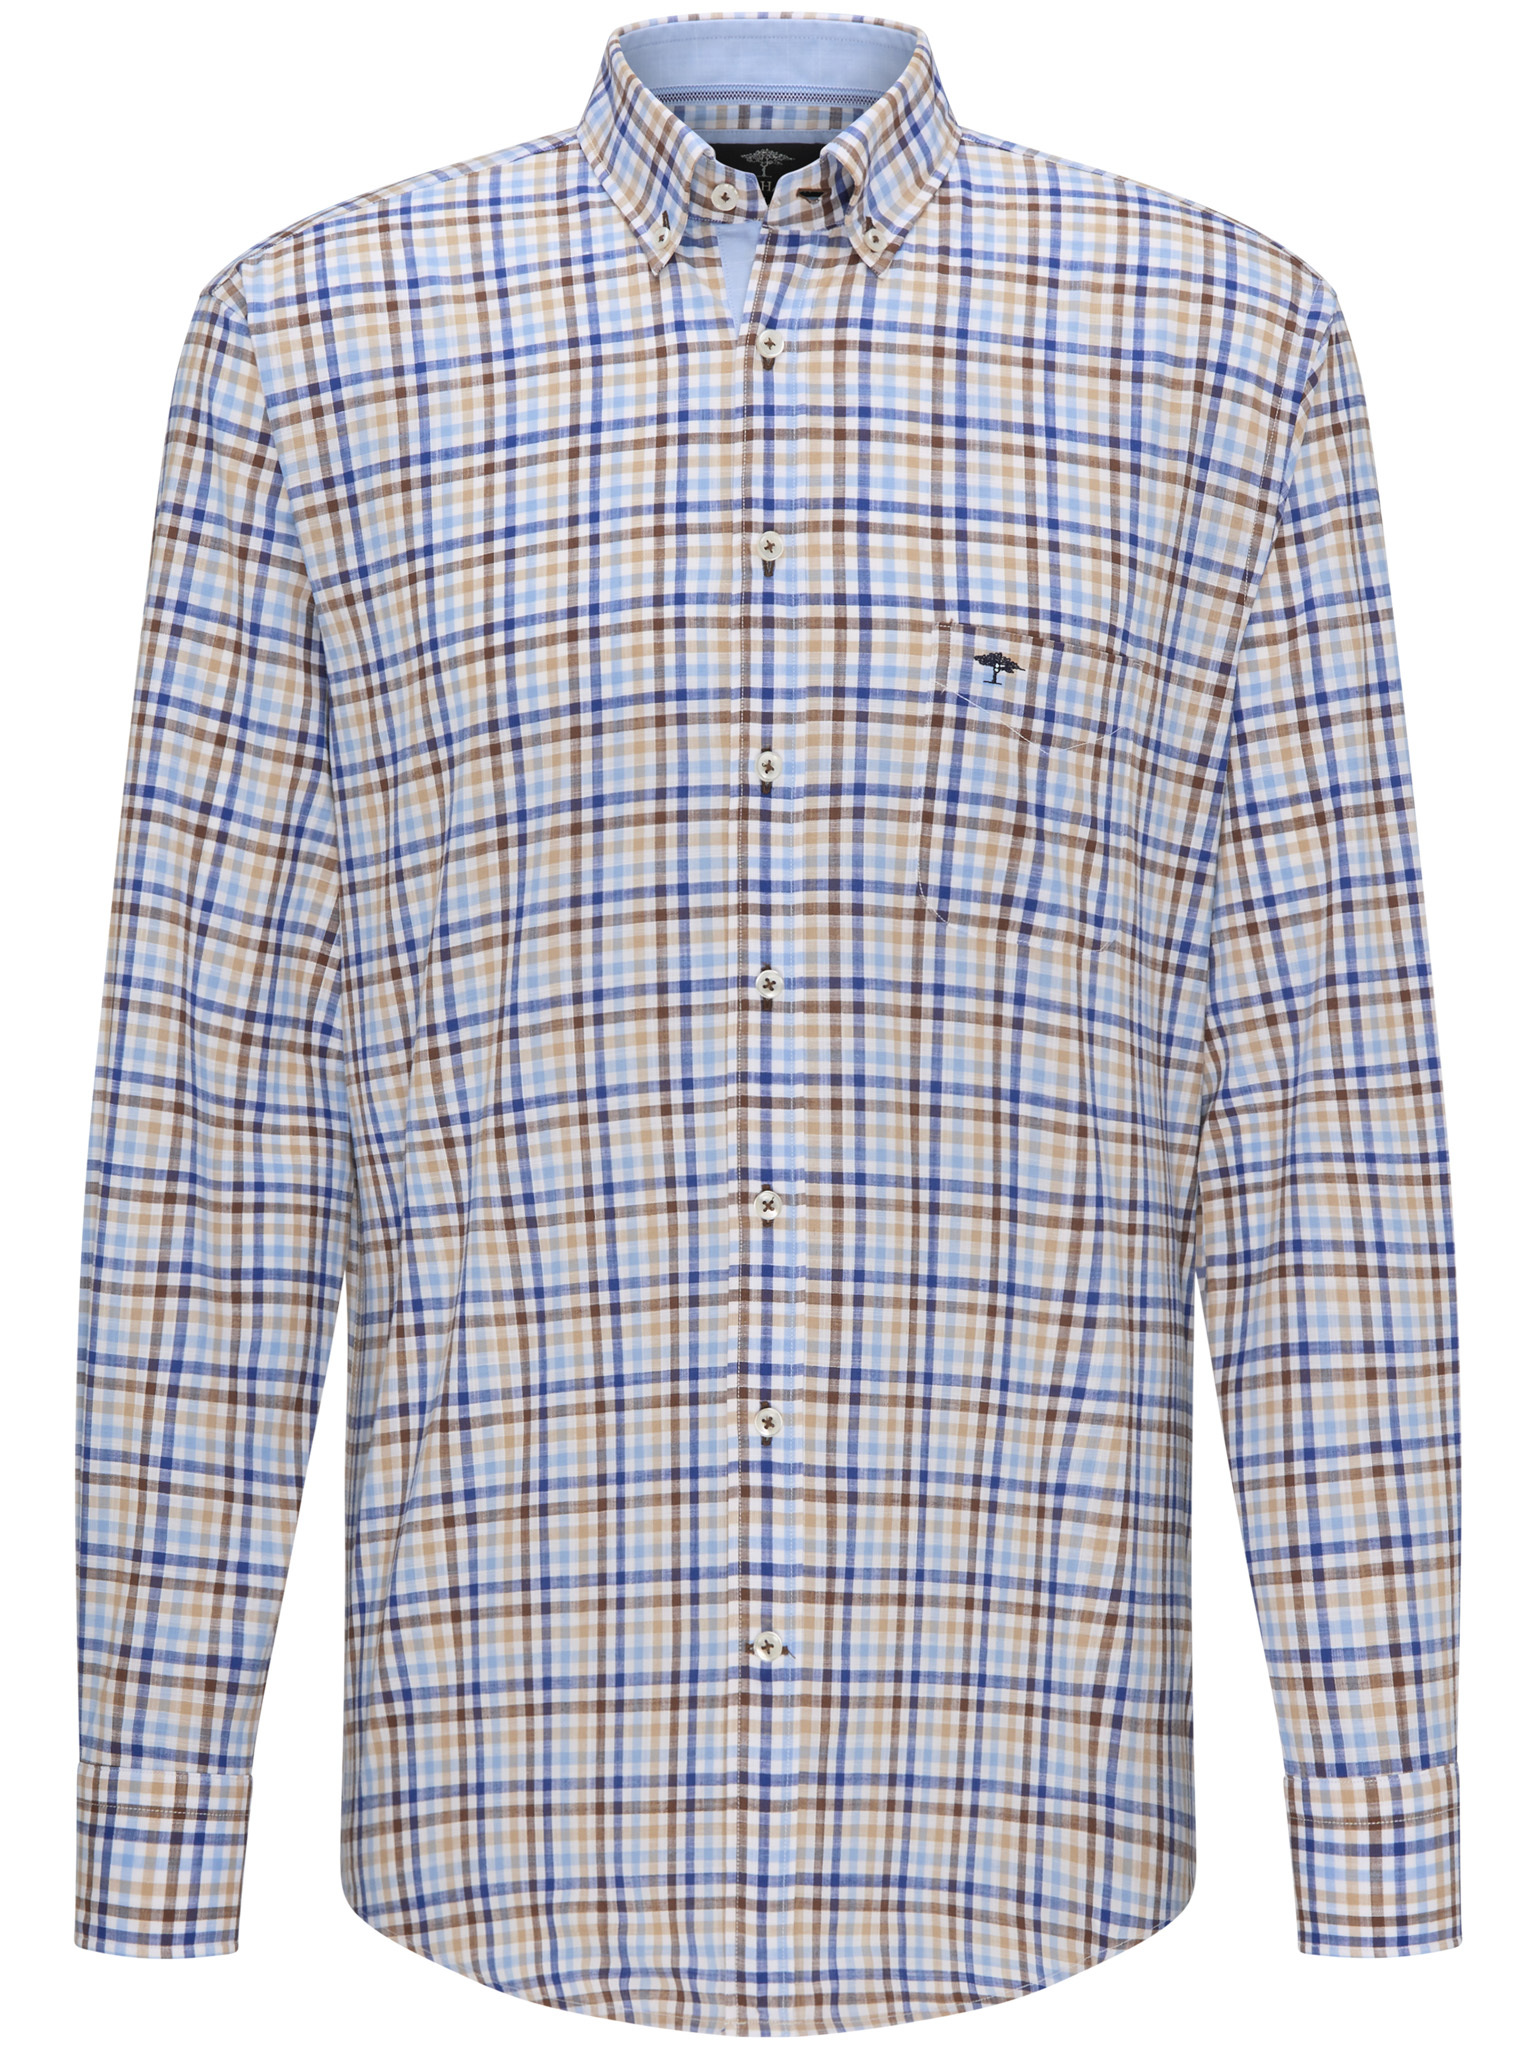 Fynch Hatton checked shirt